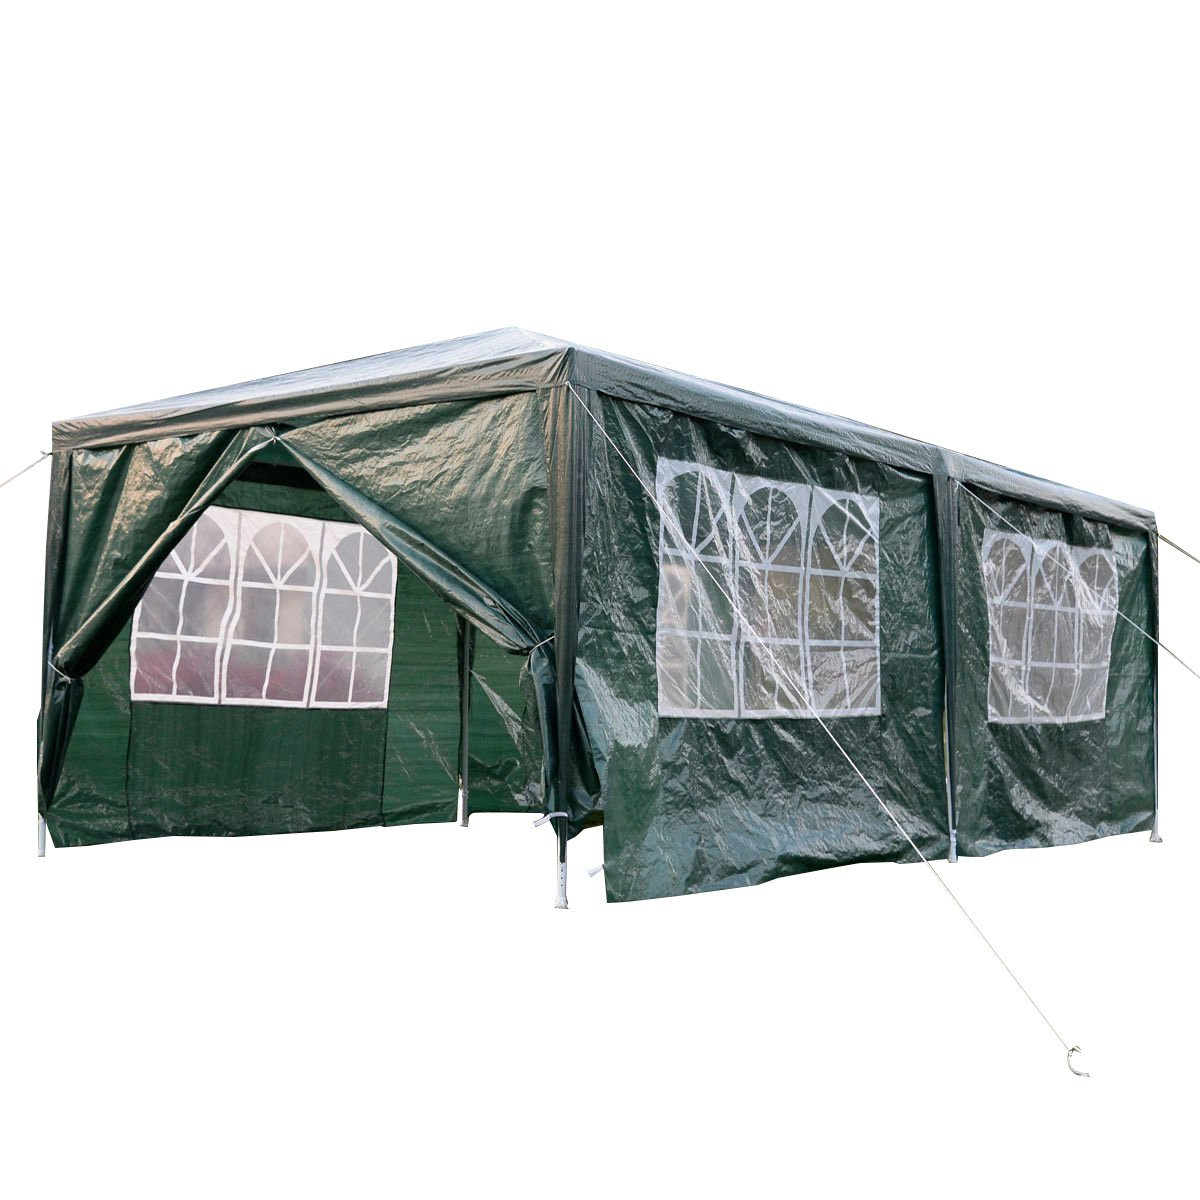 Tangkula 10'x20' Outdoor Canopy Party BBQ Tent with Windows Green